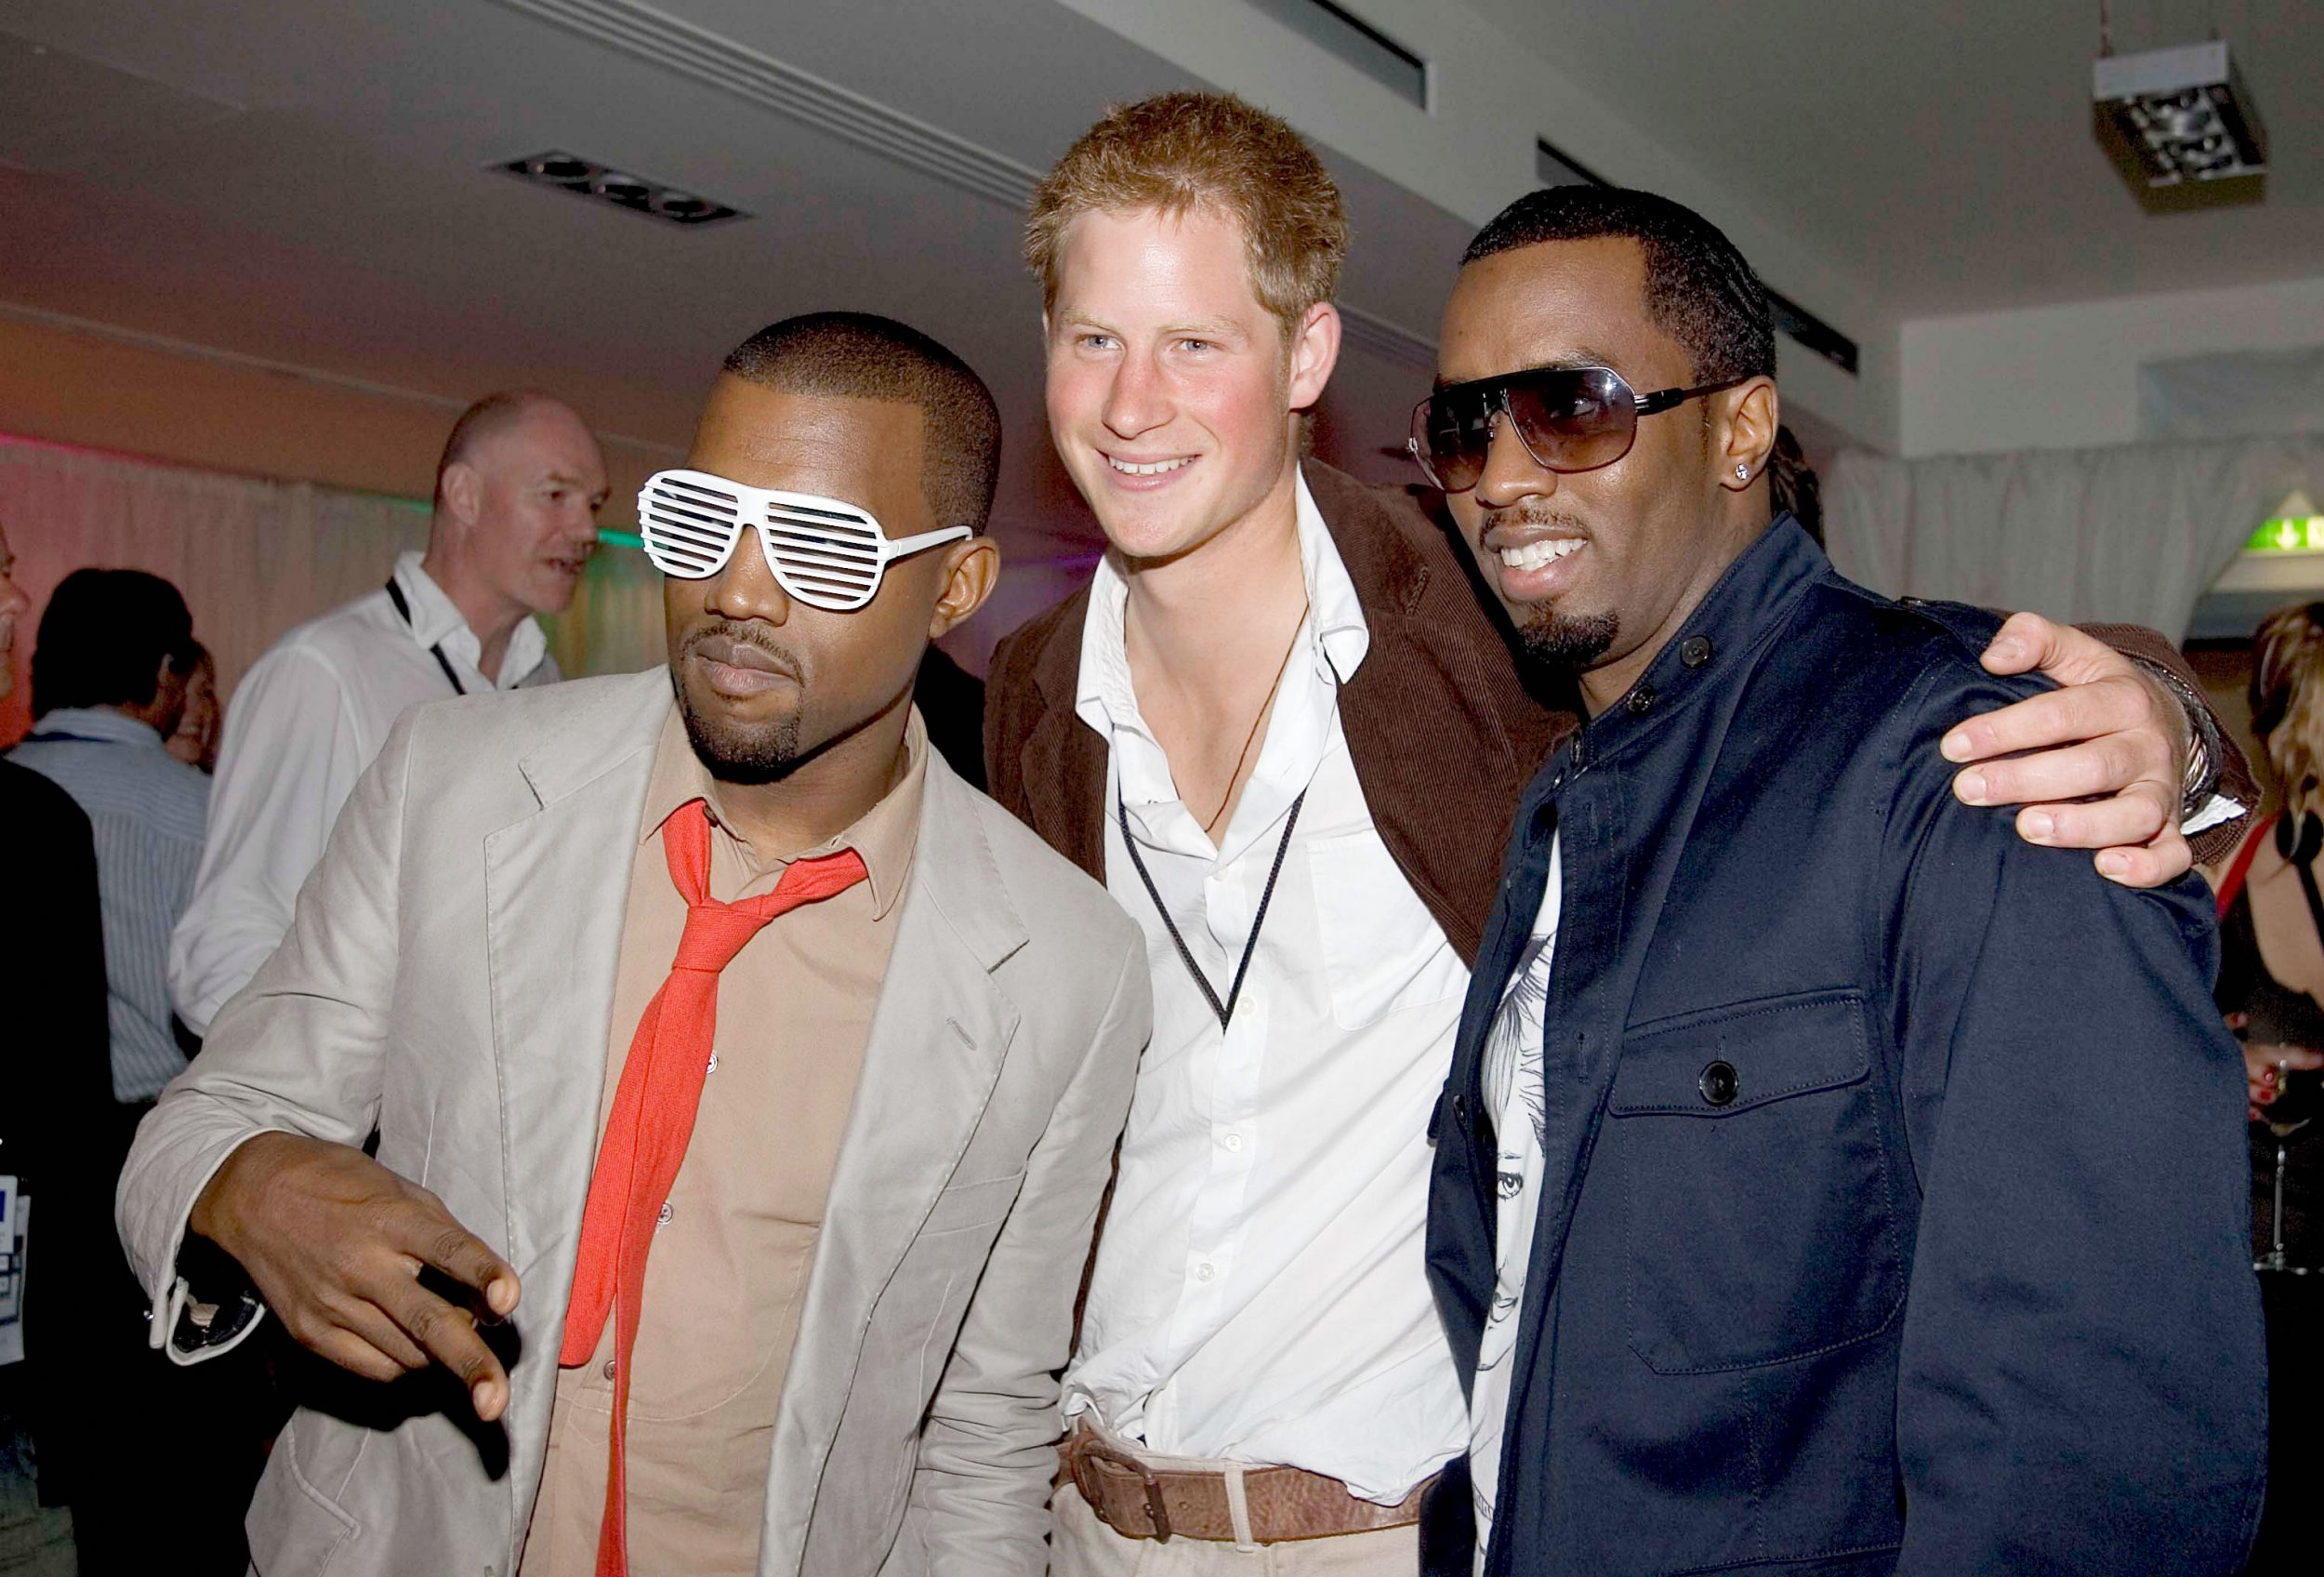 LONDON, ENGLAND - JULY 1: (NO PUBLICATION IN UK MEDIA FOR 28 DAYS) Prince Harry poses for a photograph with P Diddy and Kanye West at the after concert party the Princes hosted to thank all who took part in the 'Concert for Diana' at Wembley Stadium which the Princes organised to celebrate the life of their mother, Diana Princess of Wales, July 1, 2007 in London, England. (Photo by POOL/ Tim Graham Picture Library/Getty Images)